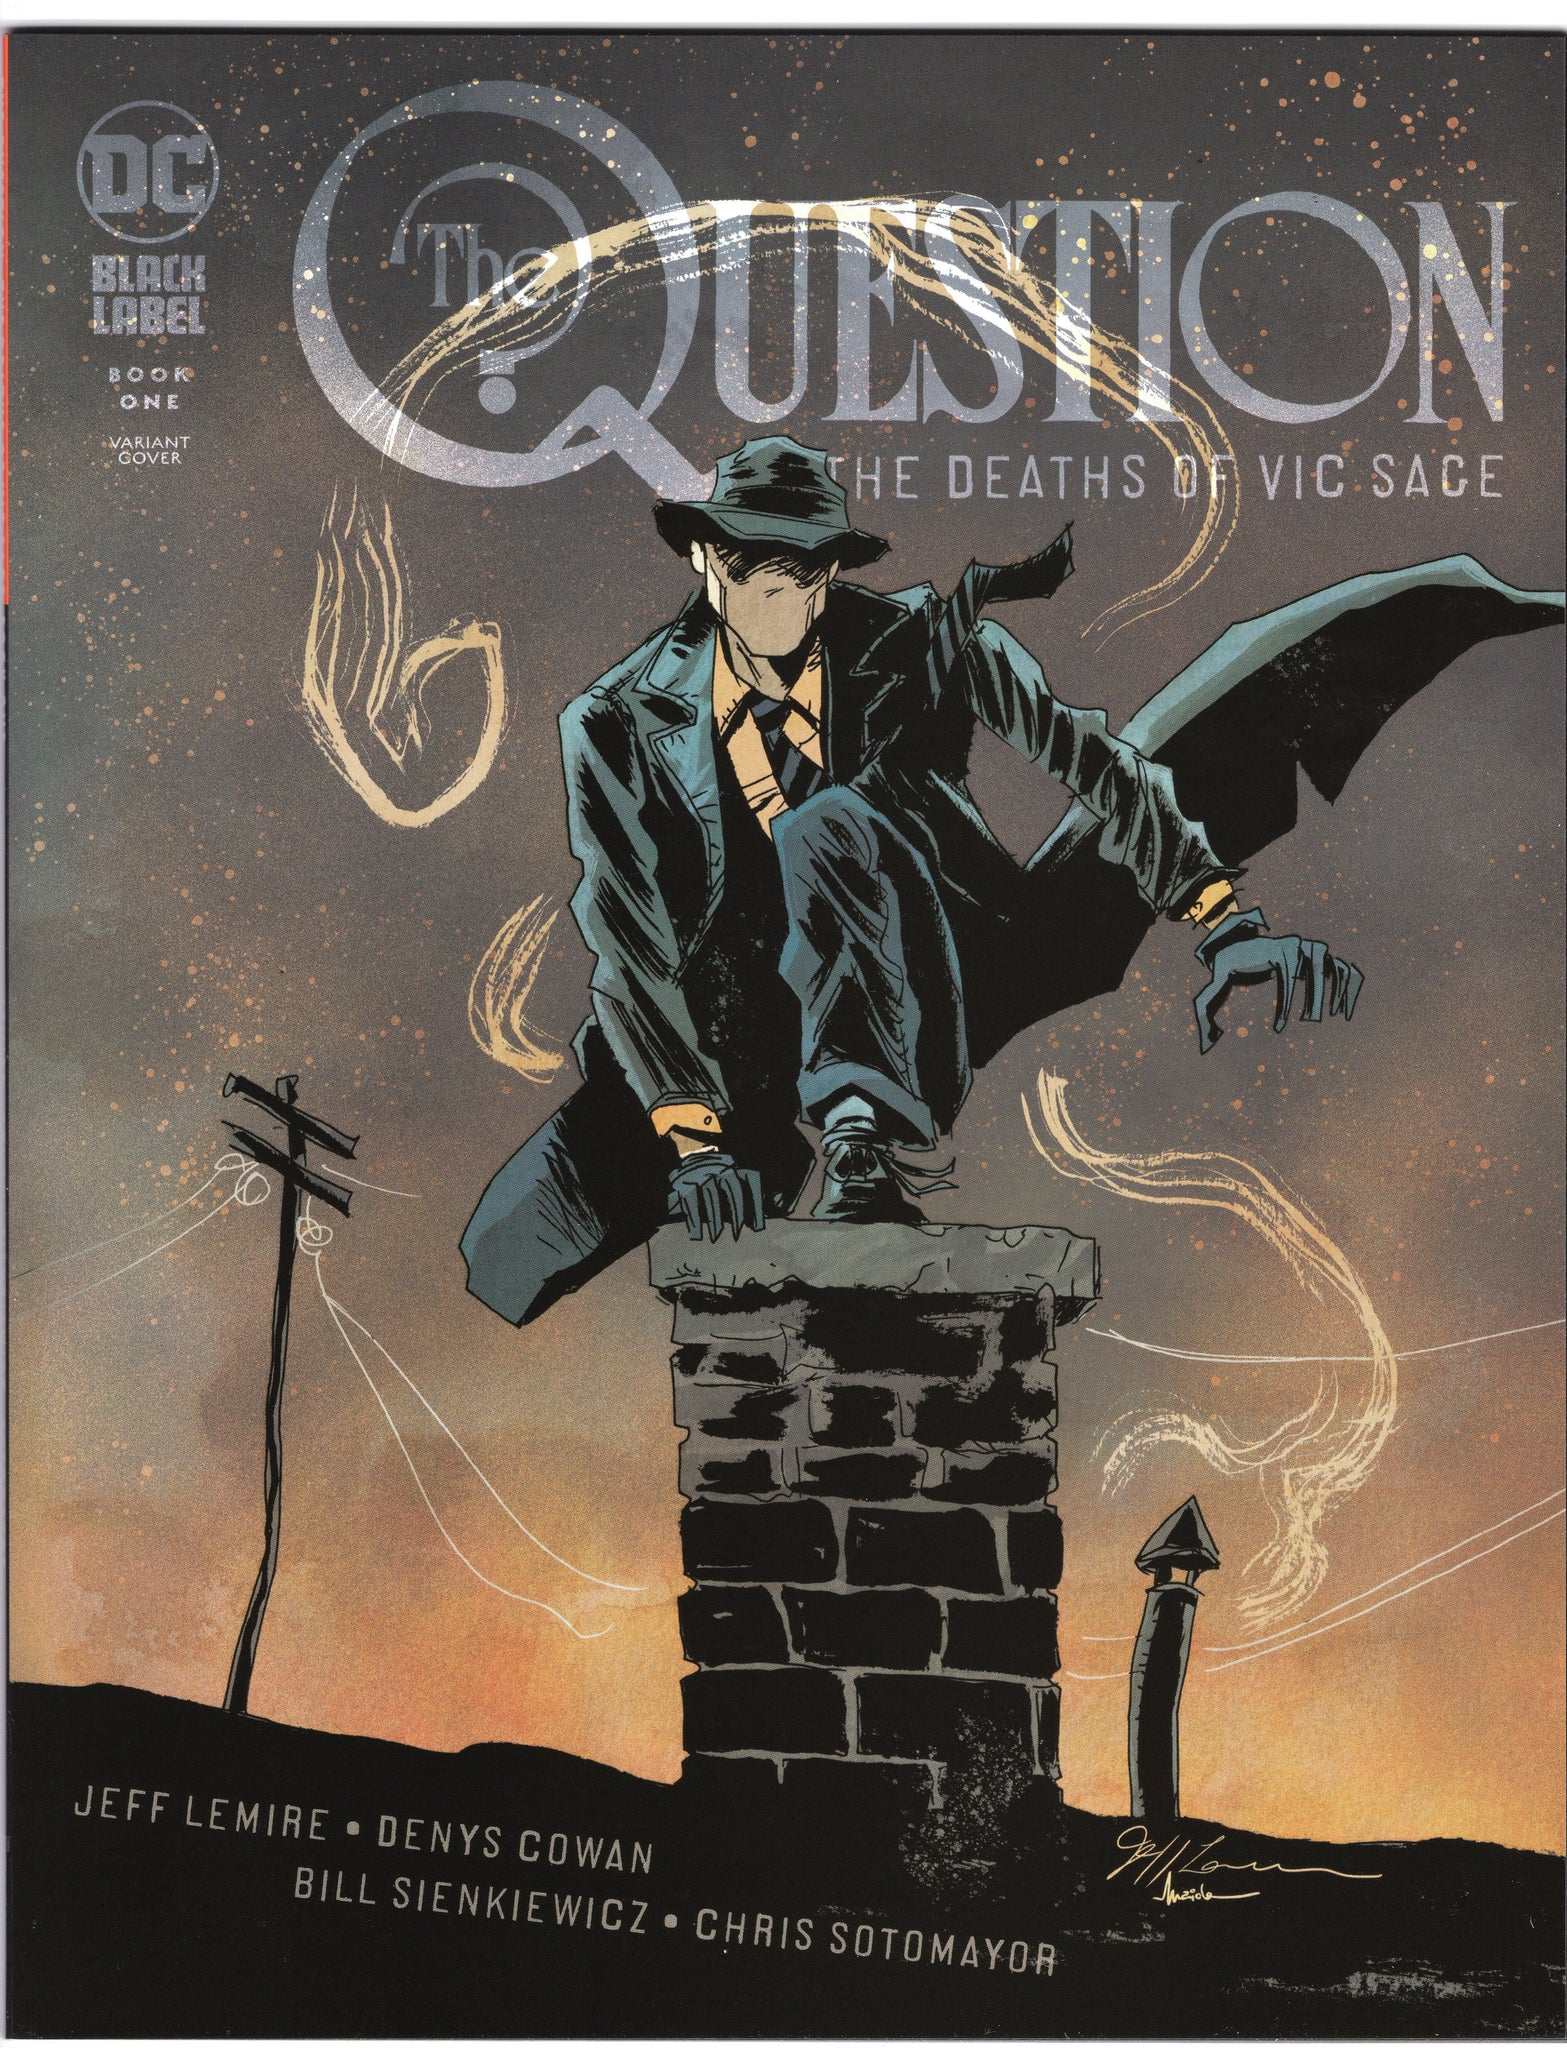 The Questions: The Death of Vic Sage #1 - Jeff Lemire Variant - NM - Rediscover Geek